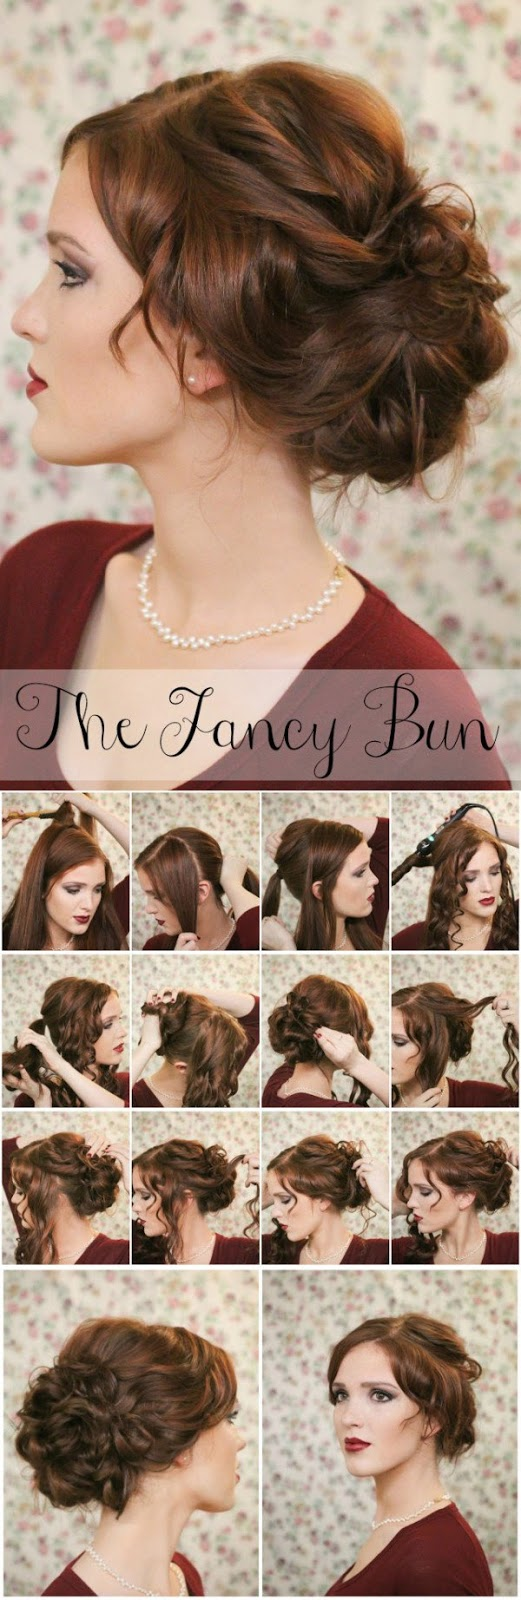 15. The Fancy BUN